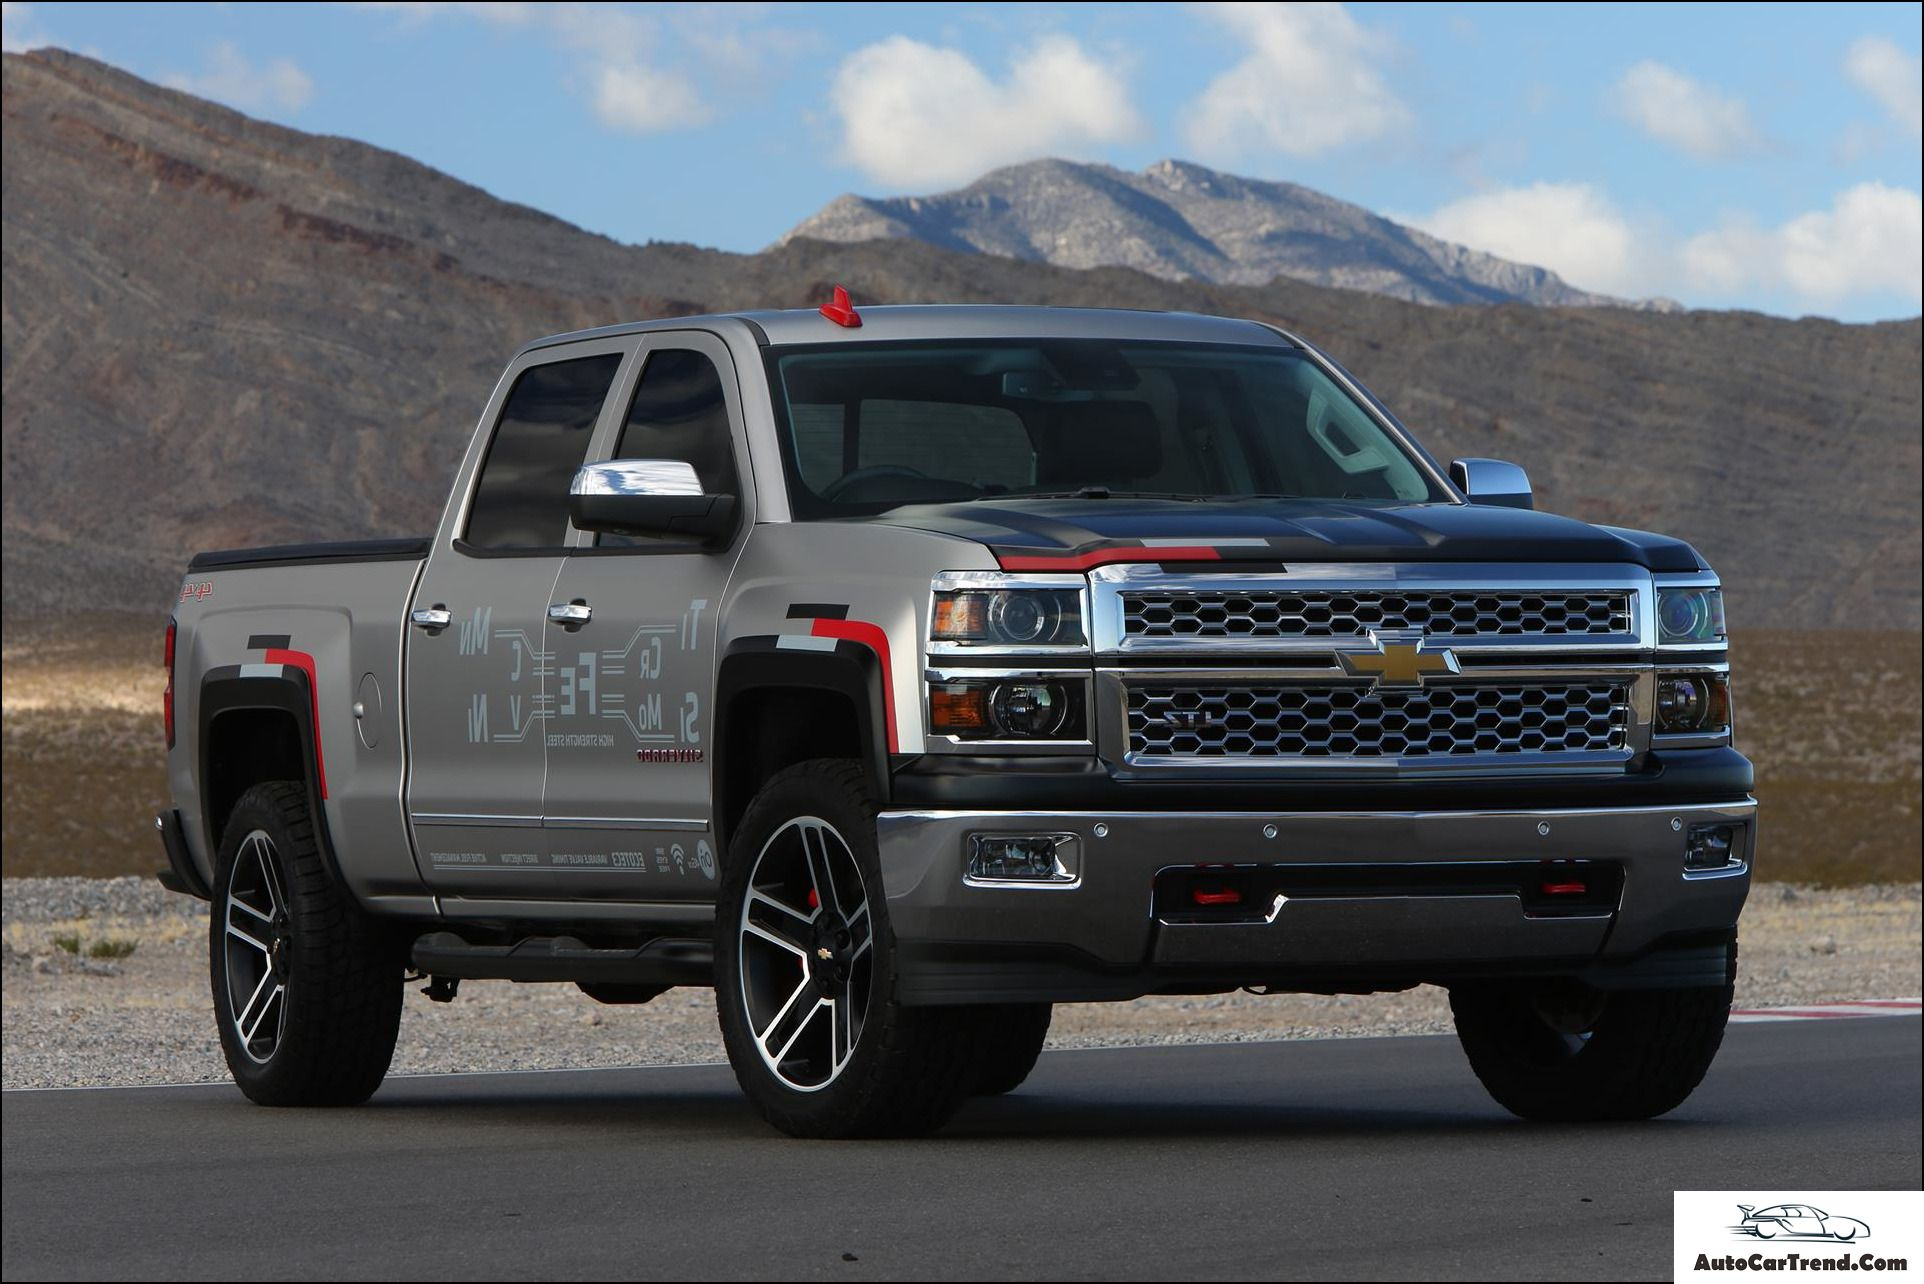 2020 Chevy Silverado Concept Price Release Date 2020 Chevy Silverado Concept Is A Forthcoming Modest Truck In Line With The Rumors Every Little Thing Is G